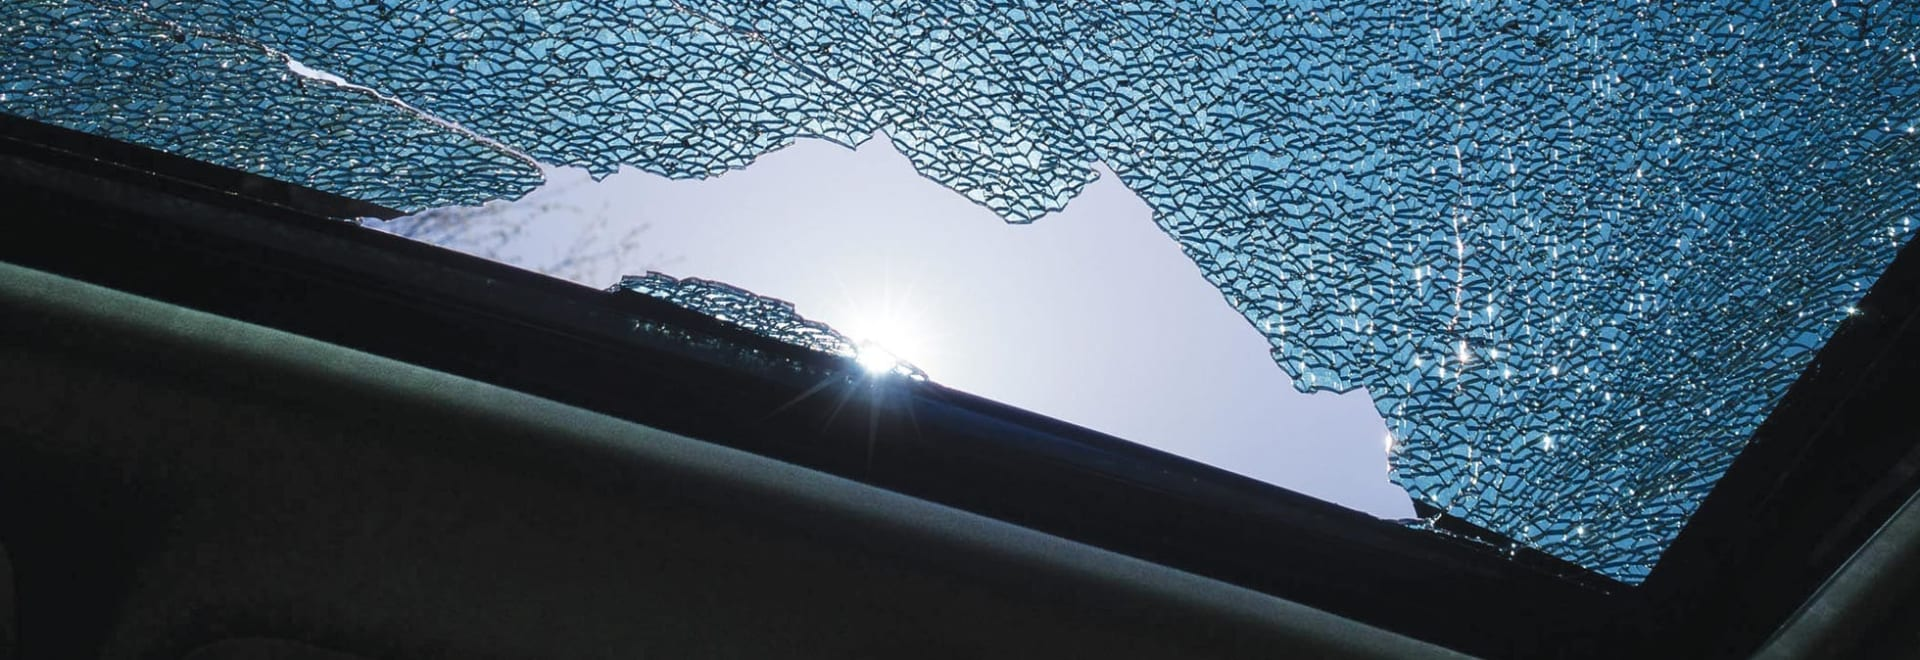 Exploding Sunroofs: Danger Overhead - Consumer Reports